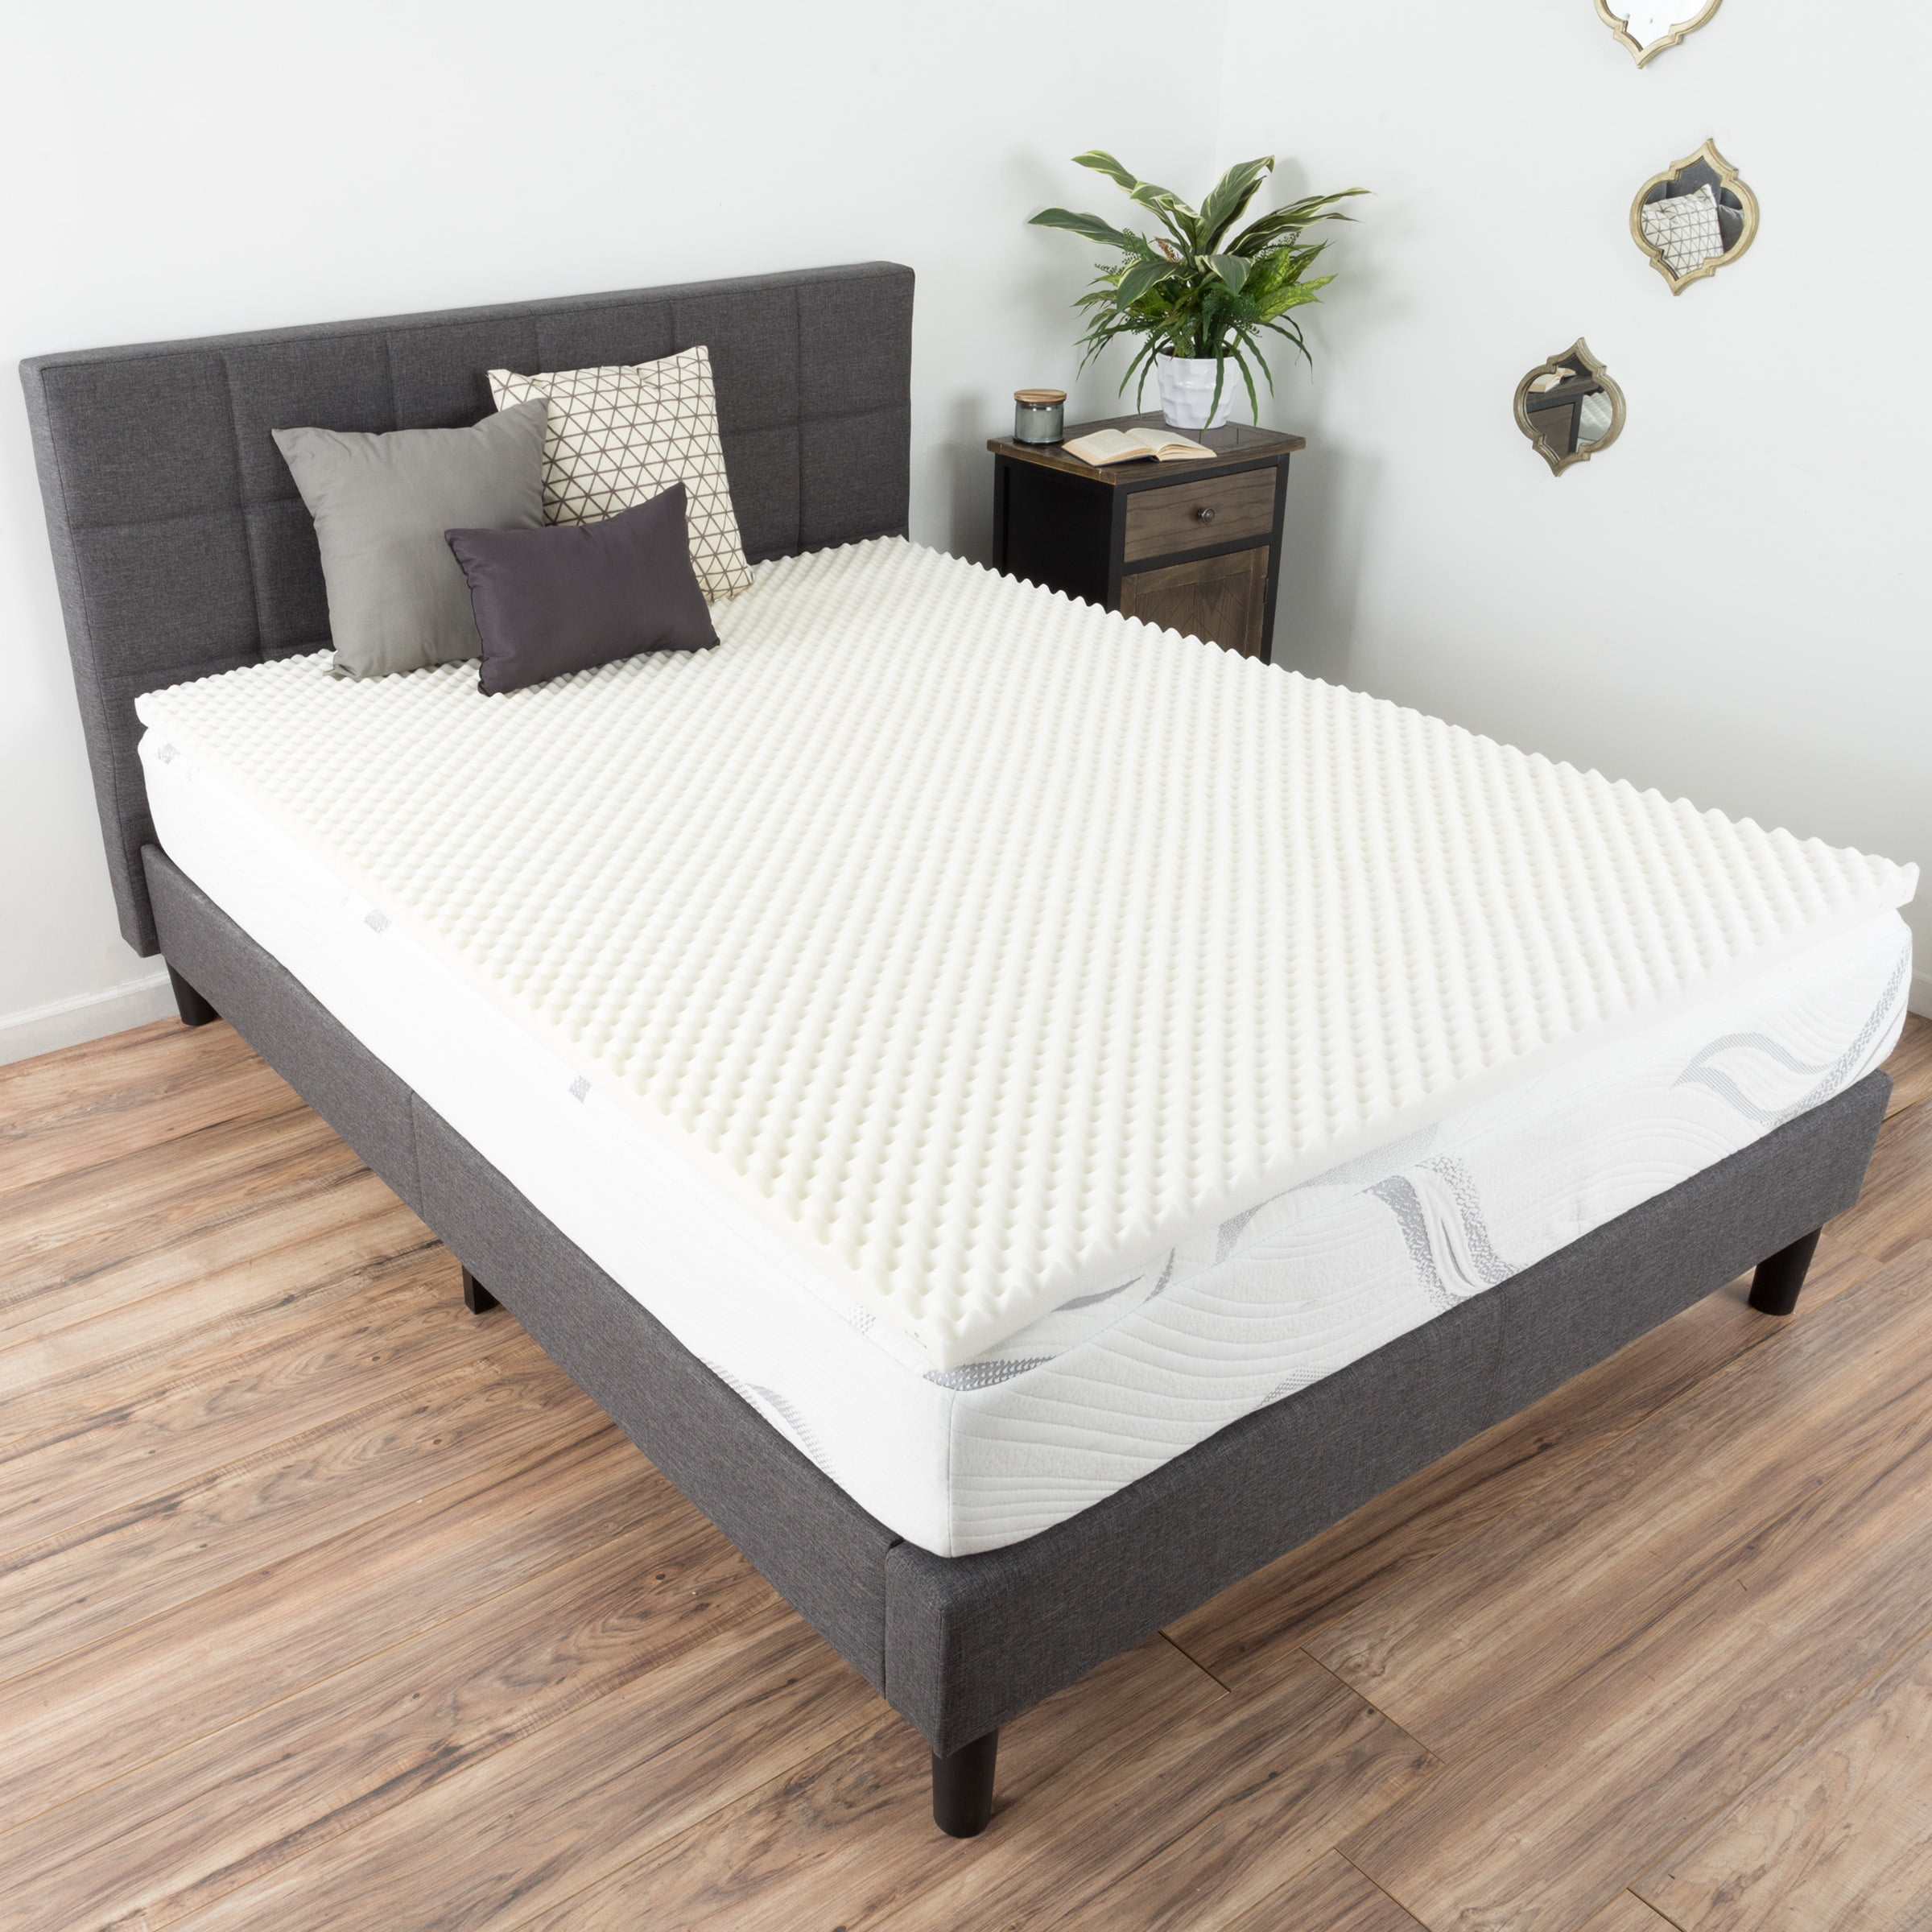 Egg Crate Memory Foam Mattress Topper Queen